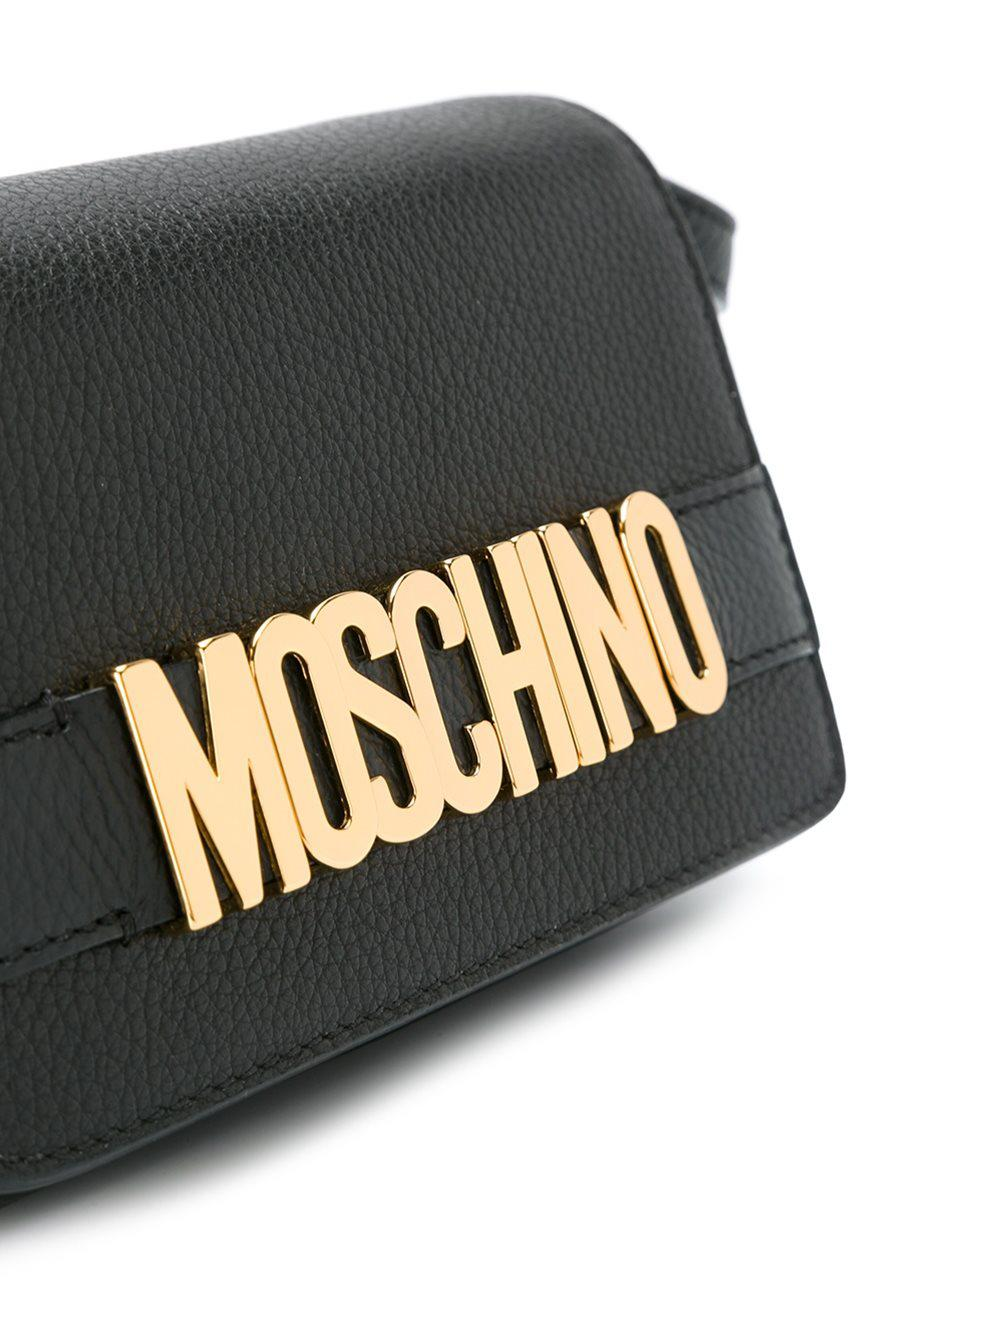 Moschino Leather Logo Crossbody Bag in Black